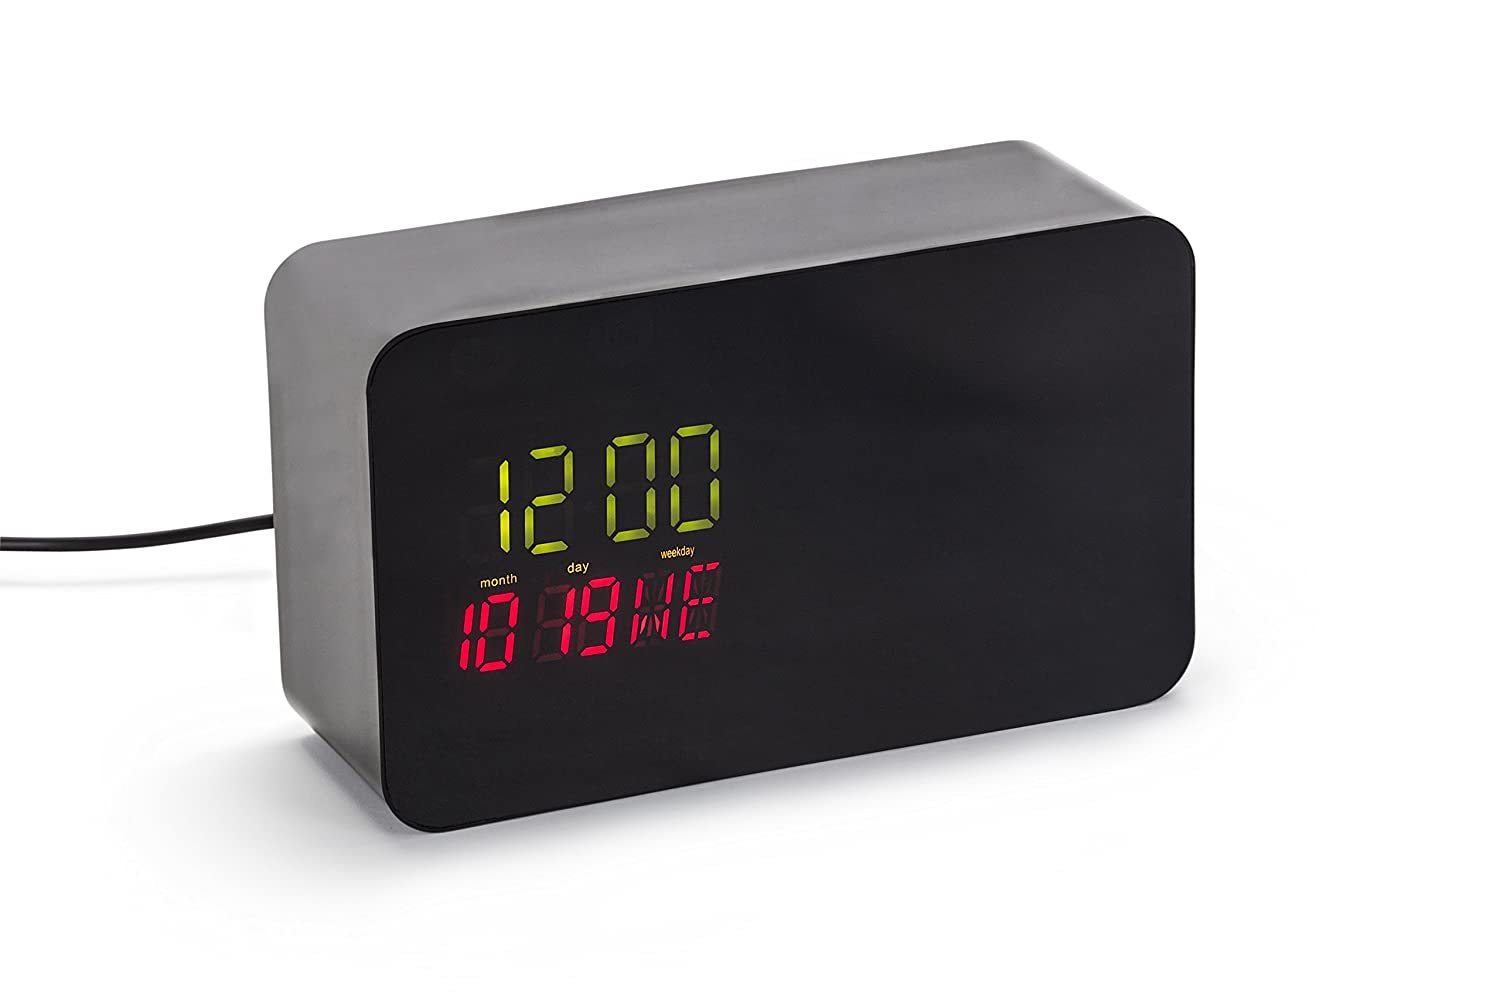 Hidden Clock Case compatible with Yi Home Camera - Hidden Yi Home Camera Enclosure - The perfect way to hide your Yi Home Camera (Yi Home Camera not included)